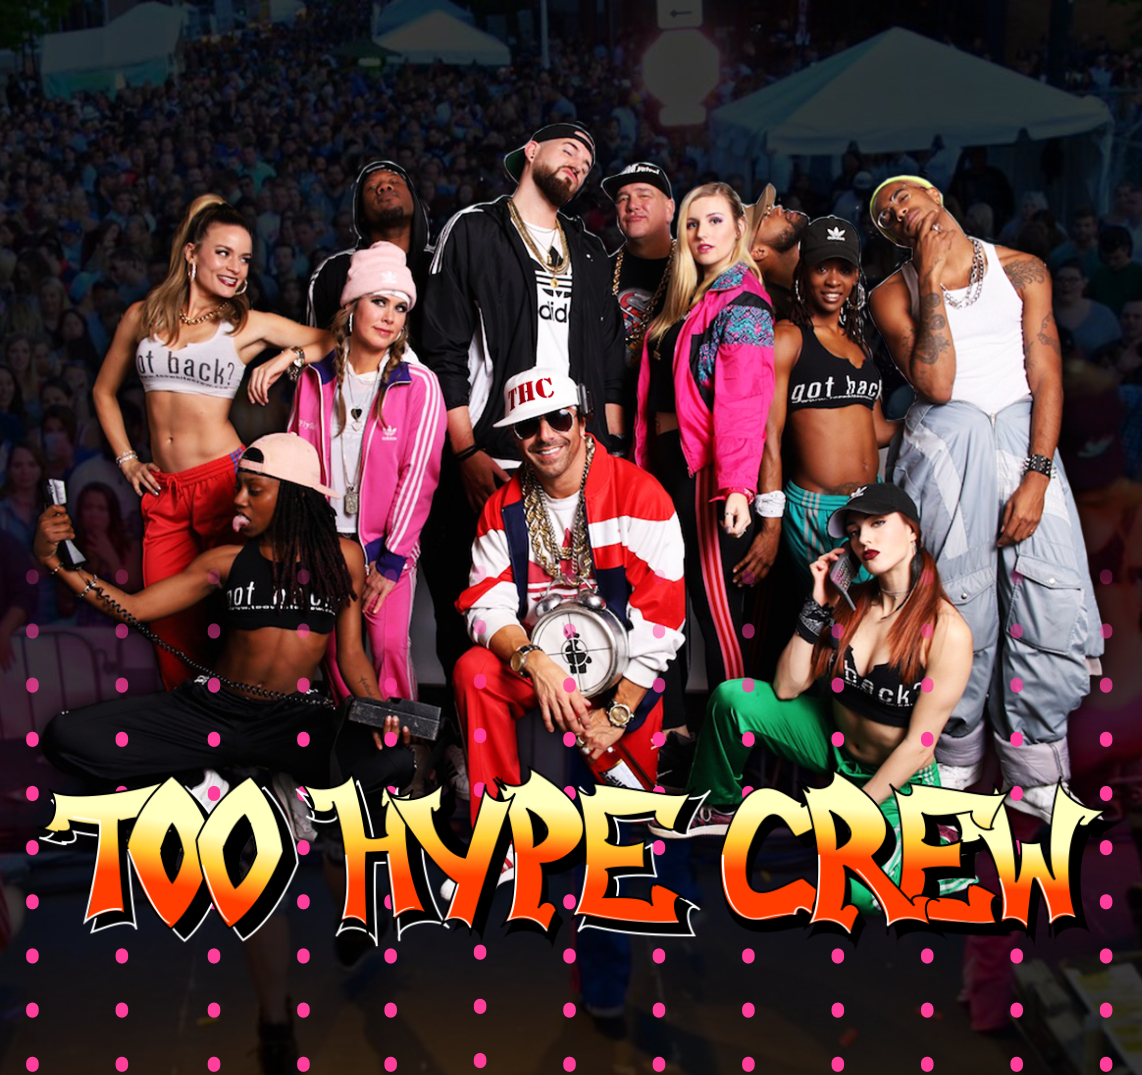 Too Hype Crew show poster